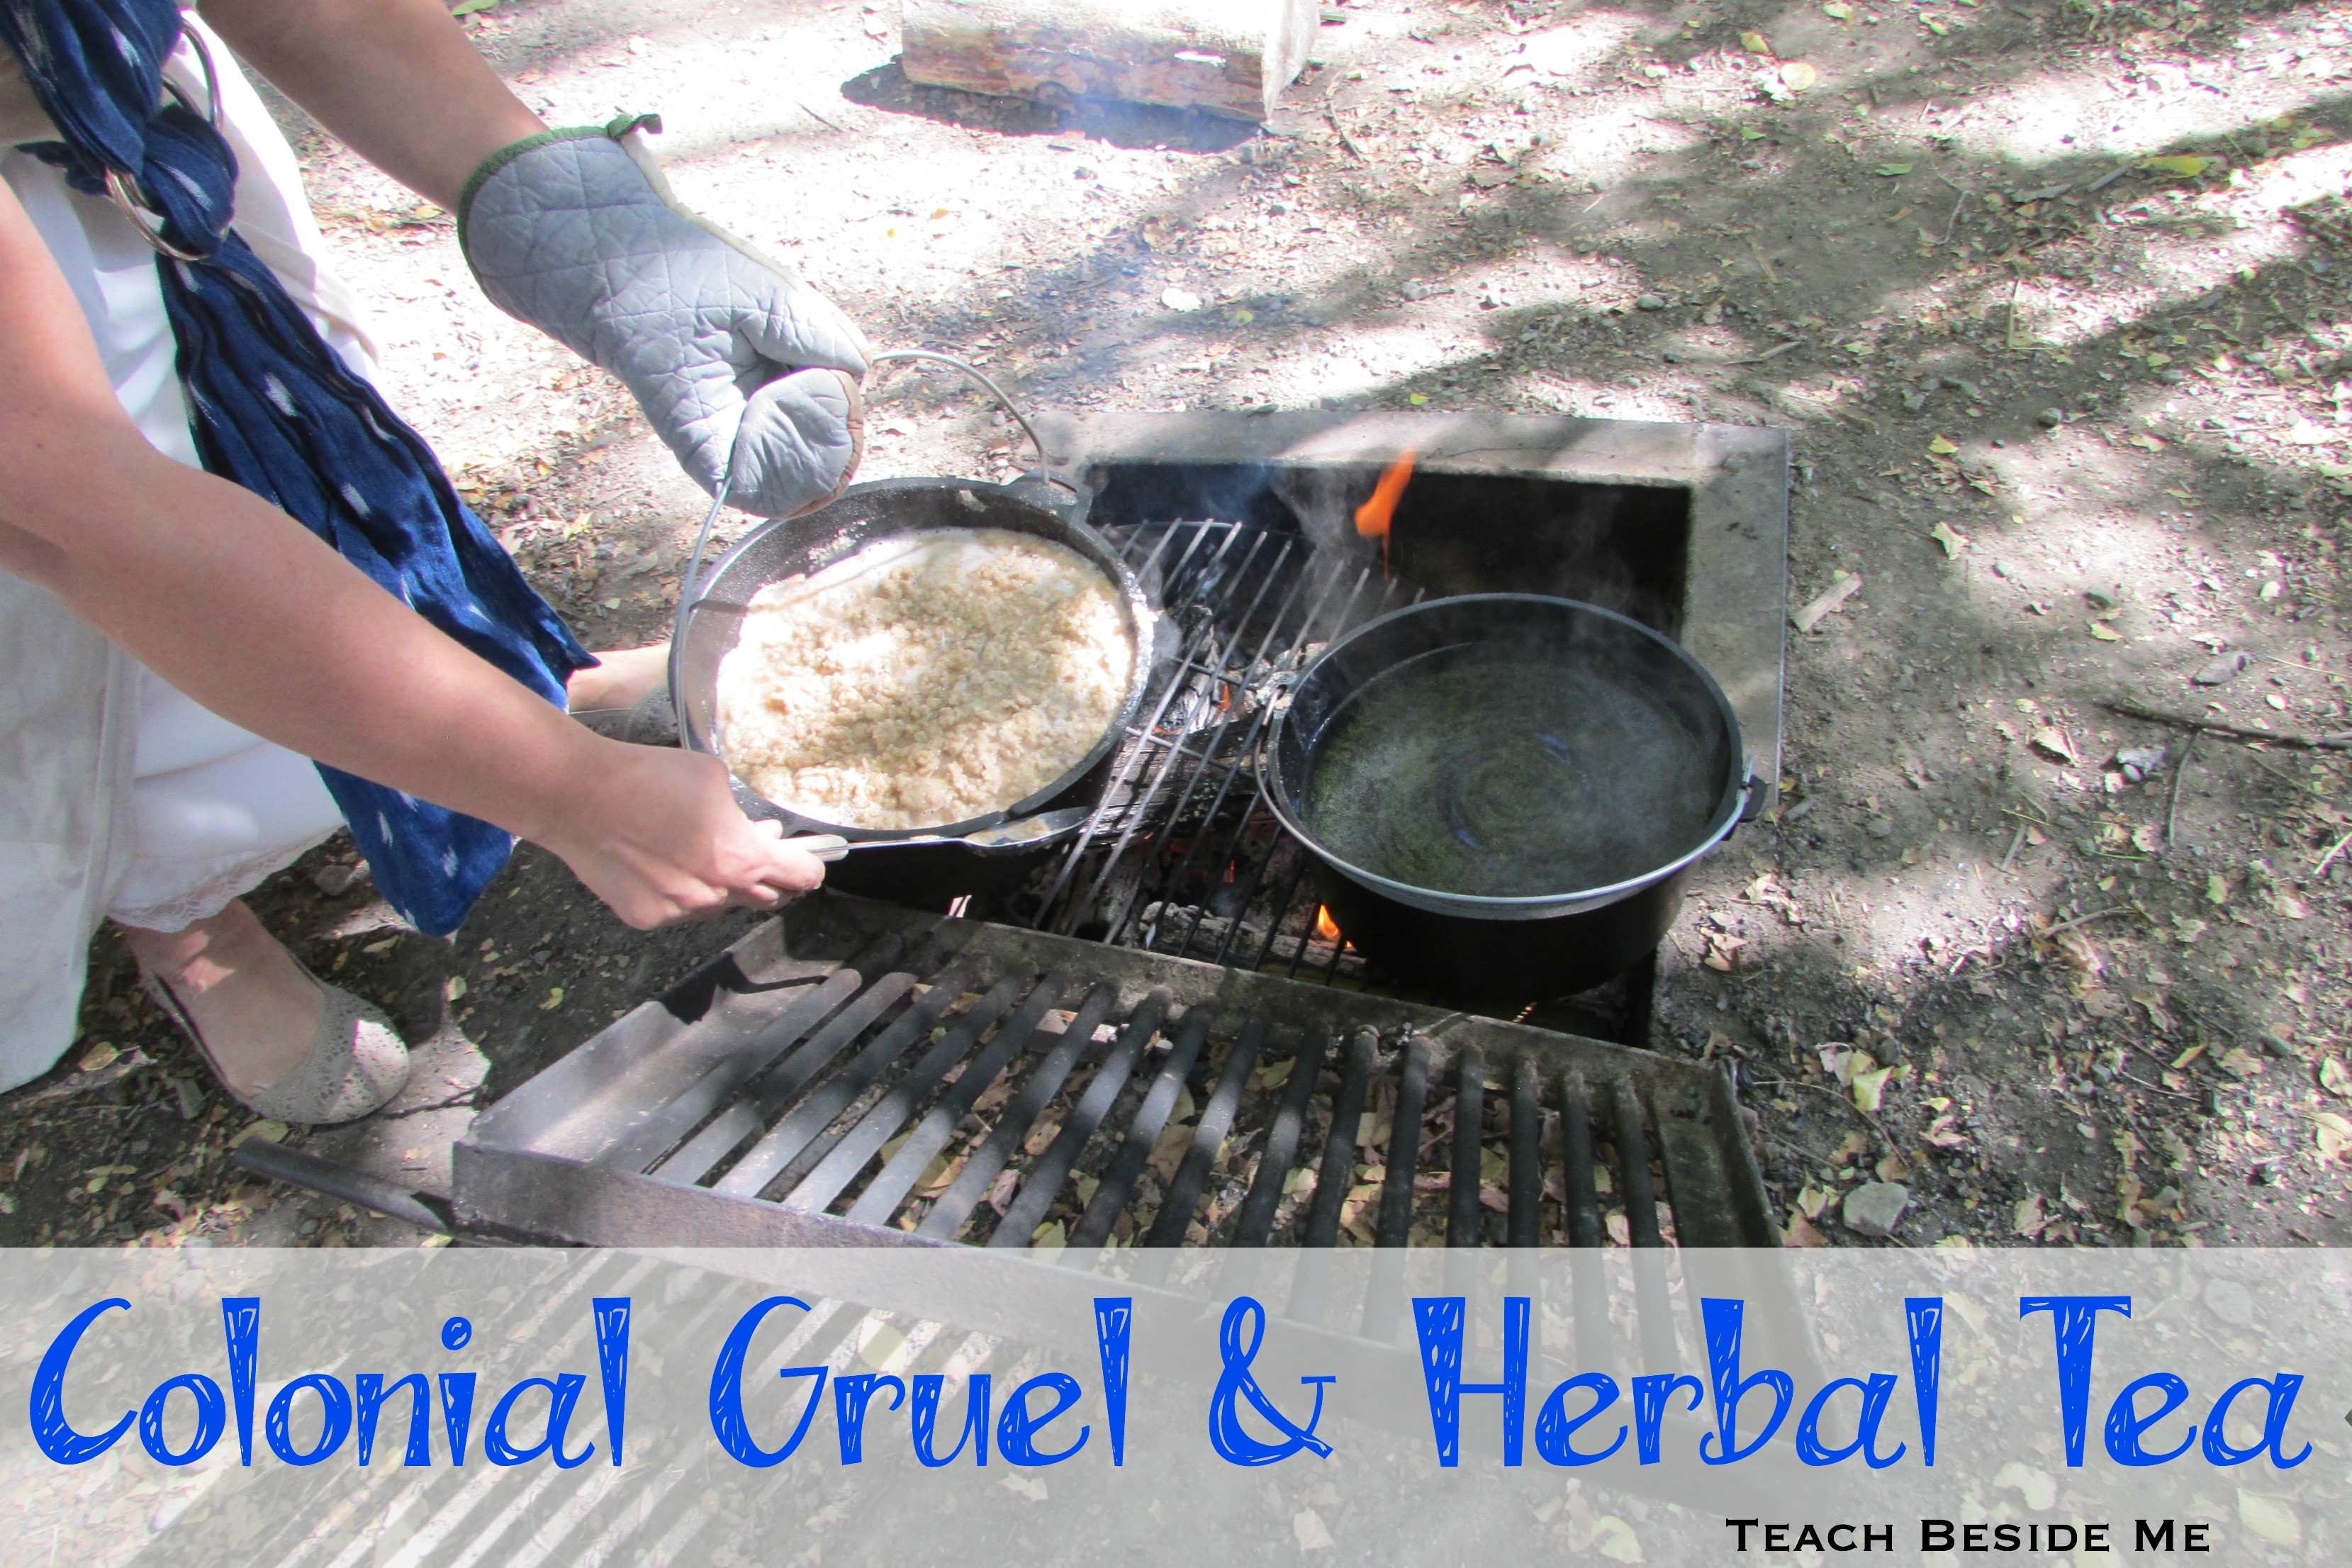 Colonial Gruel & Herbal Tea